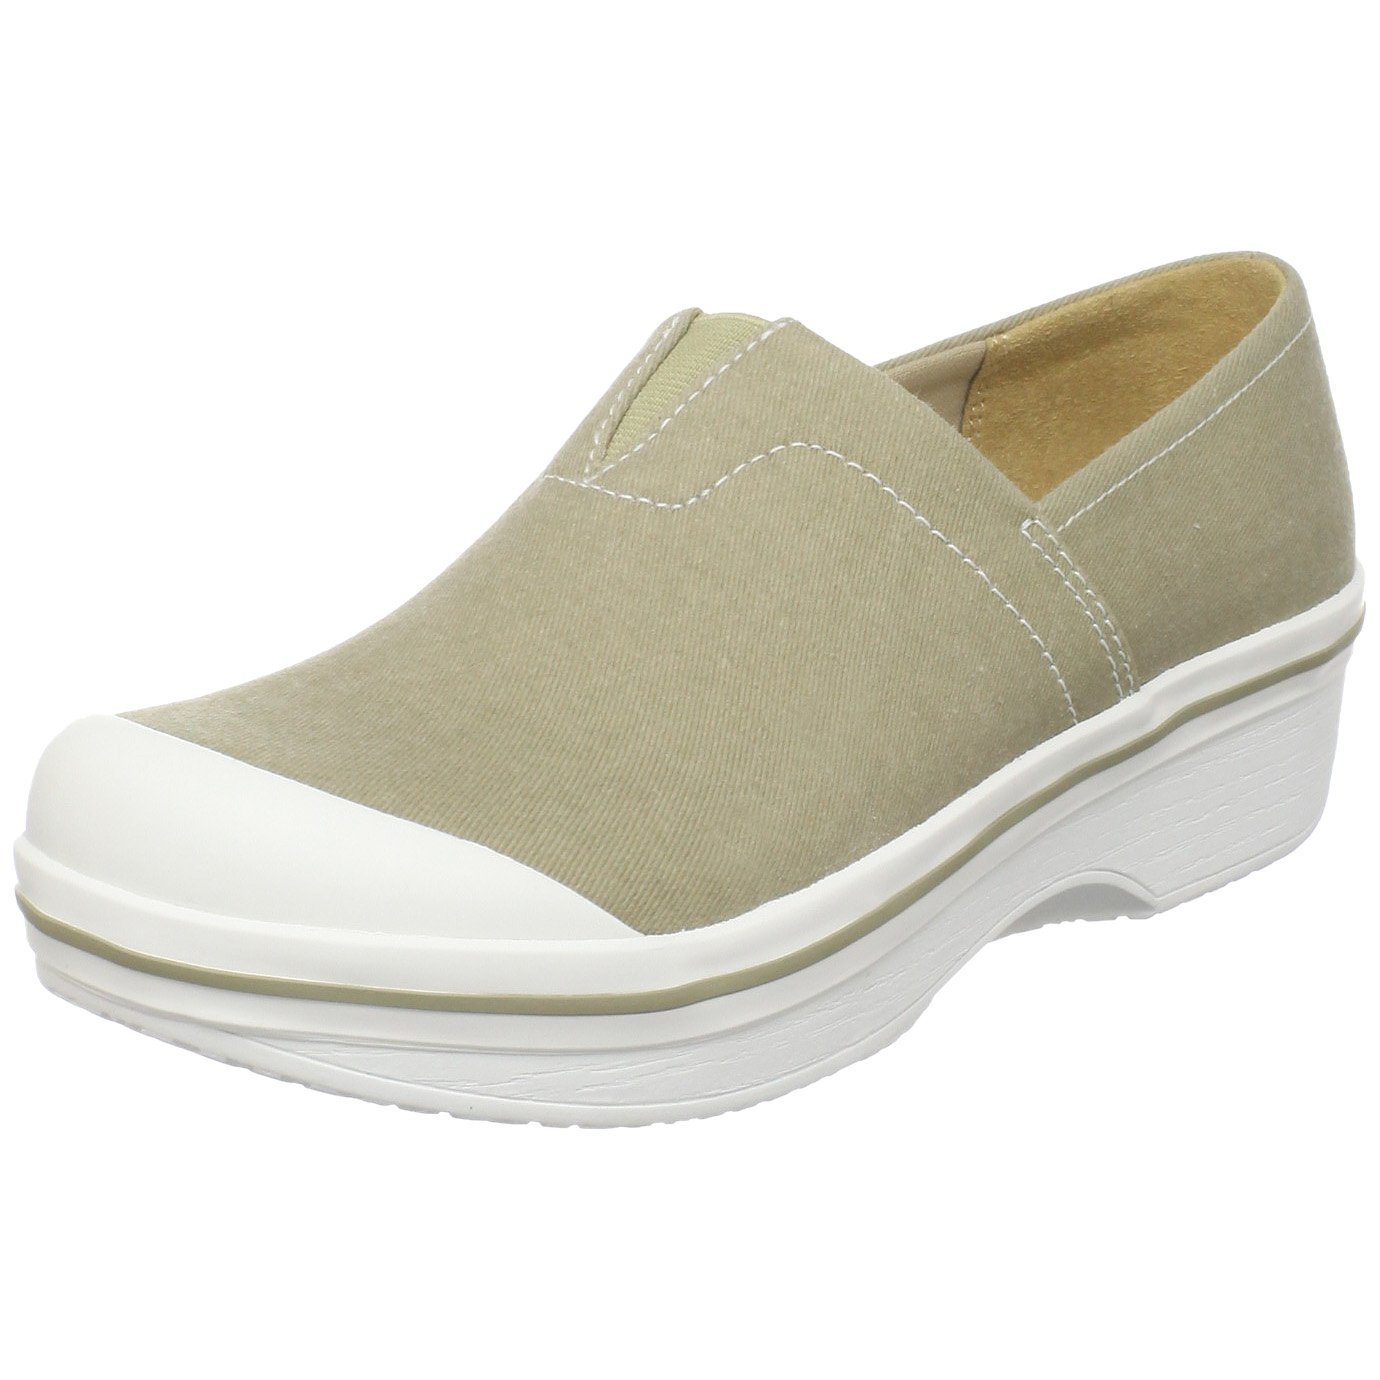 Dansko Vesta Canvas Clog (Toddler/Little Kid/Big Kid) Sand 27 M EU (9.5-10 M US Toddler)